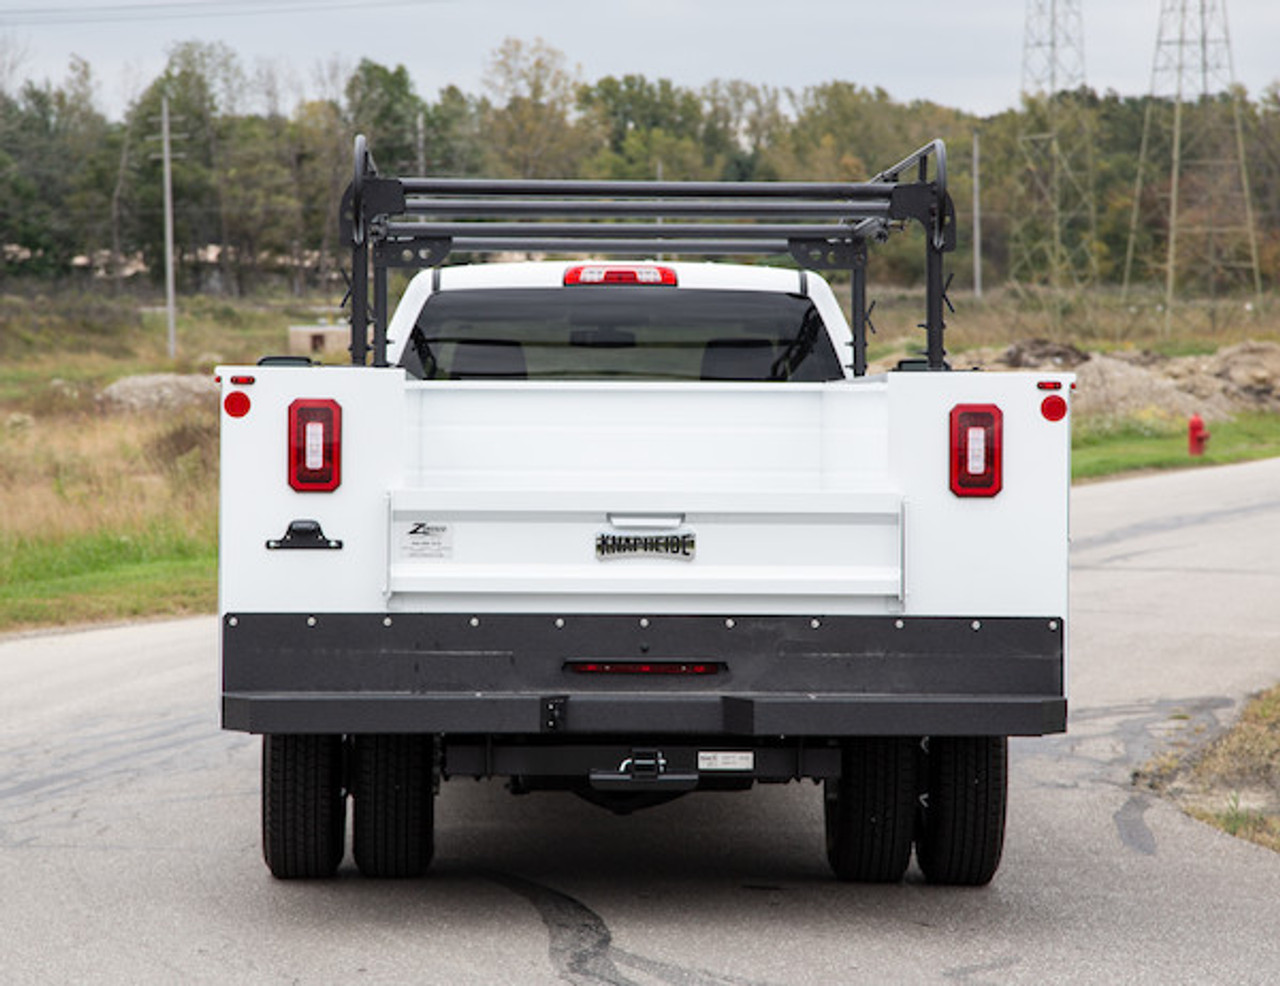 BUYERS 1501250 13-1/2 Foot Black Service Body Ladder Rack for Movers, Contractors, Construction, Painters Picture # 5